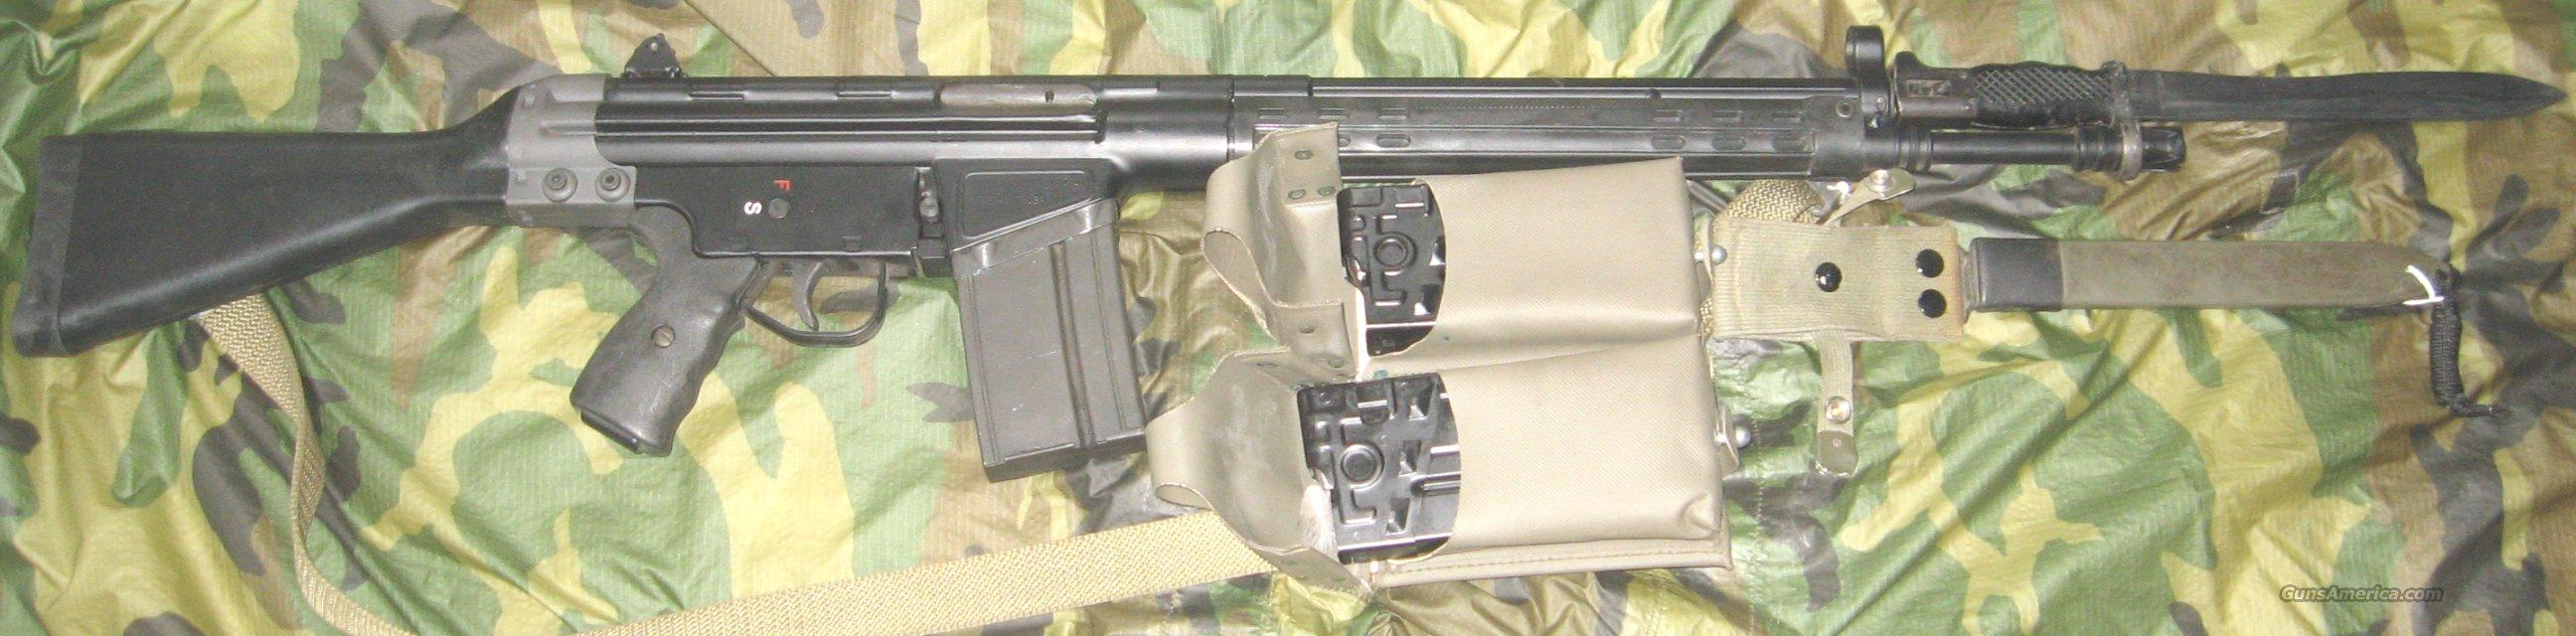 CETME new barrel & accessories  Guns > Rifles > Military Misc. Rifles Non-US > Other